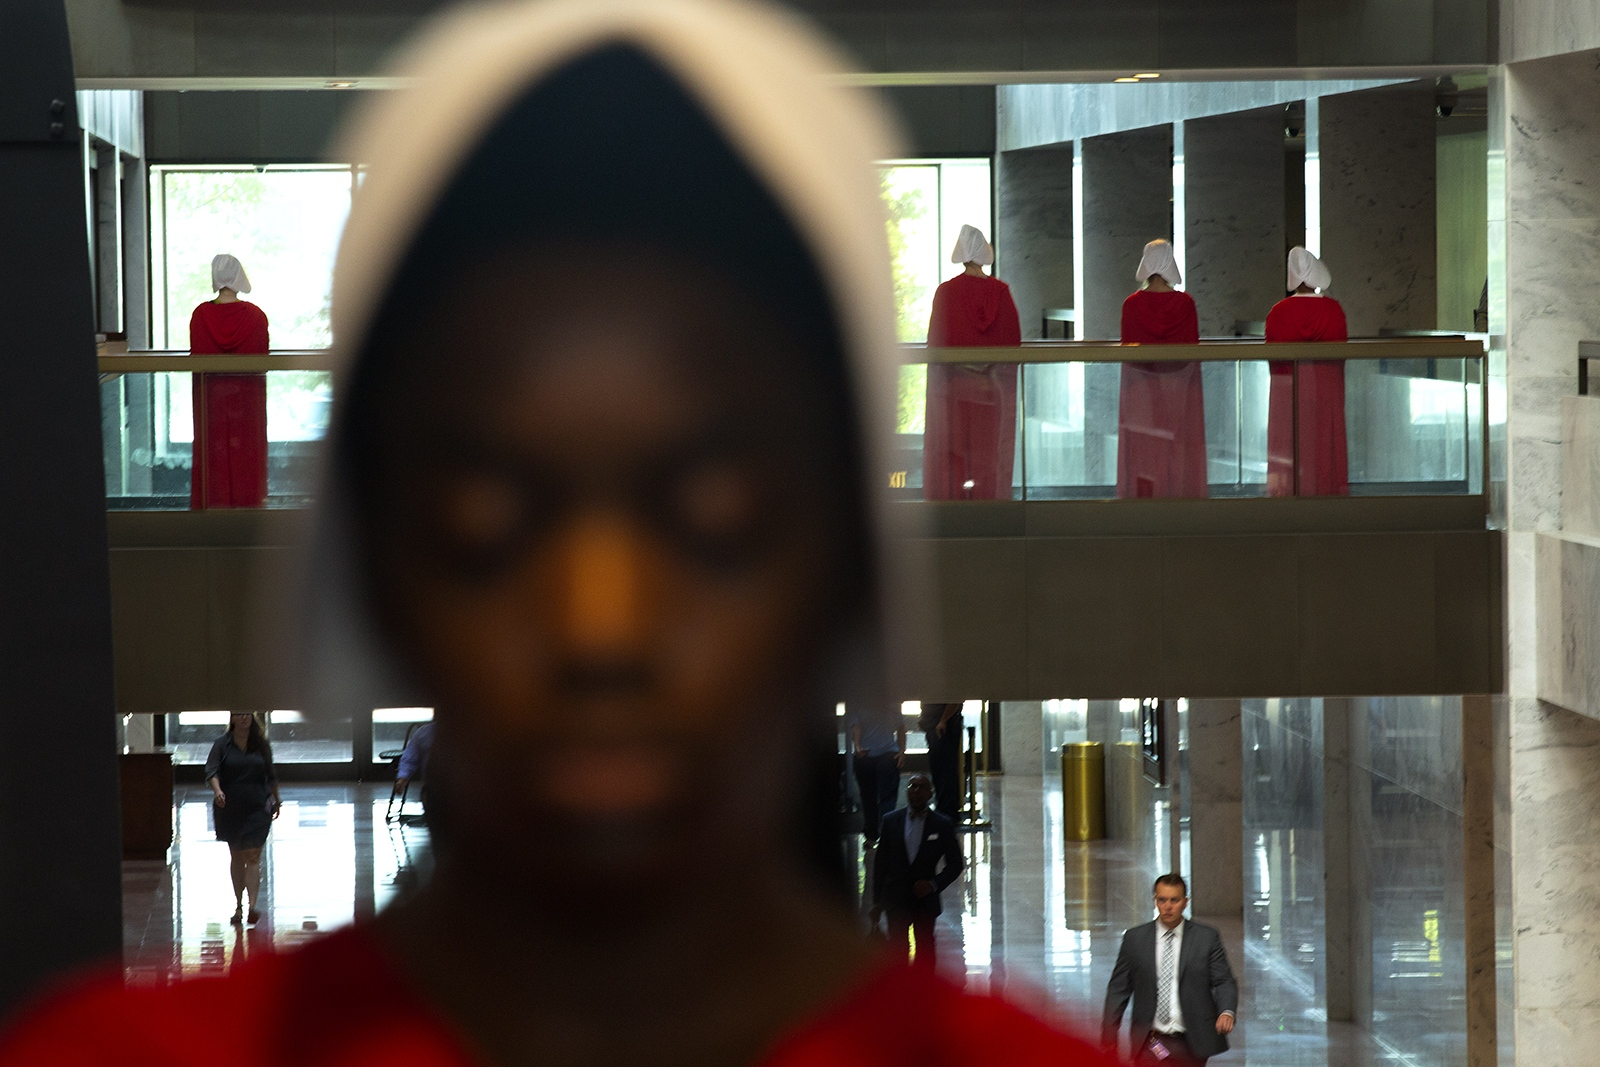 Women dressed as characters from A Handmaid's Tale stand quietly in the Hart Senate Office Building on September 5, 2018. They are associated with Demand Justice and are protesting Brett Kavanaugh's nomination to the U.S. Supreme Court.